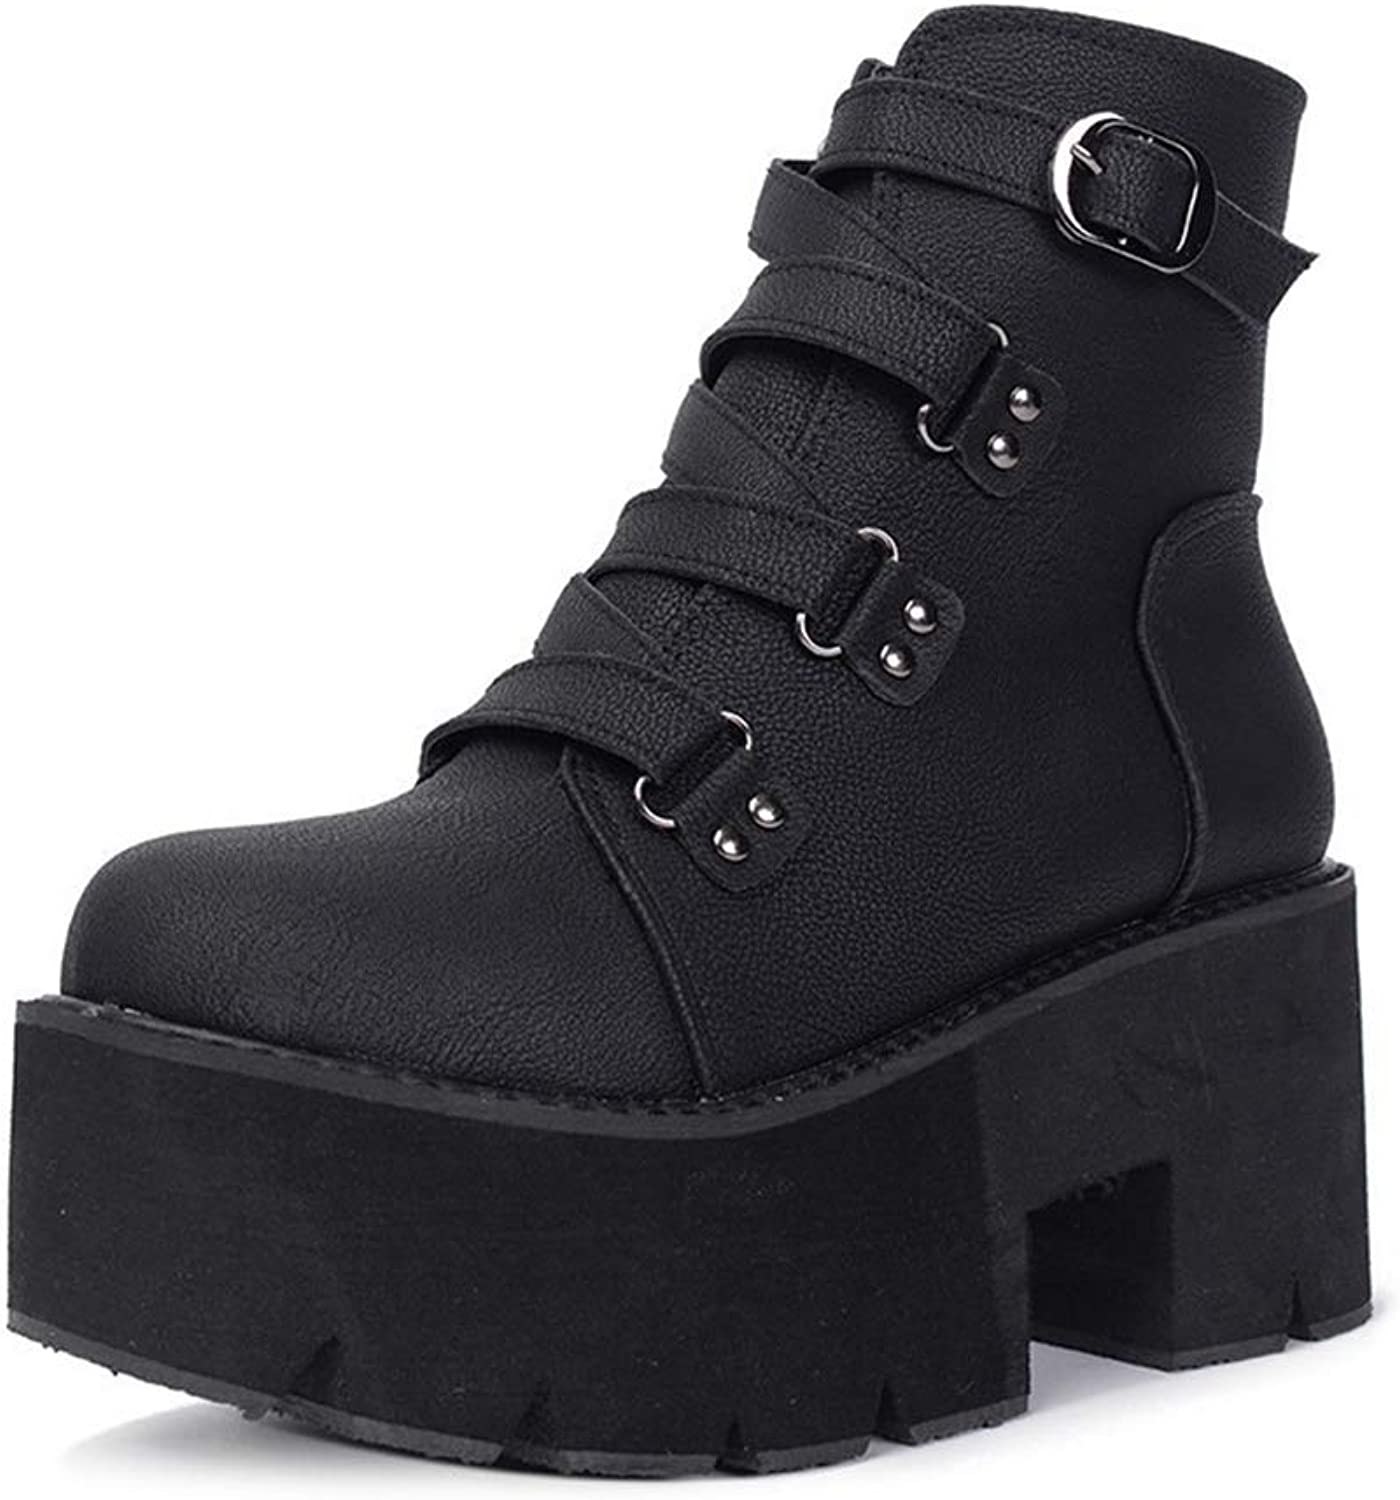 SANOMY Wedge Heel Ankle Boots for Women Waterproof Platform Rubber Sole Punk shoes Buckle Strap Riding Booties